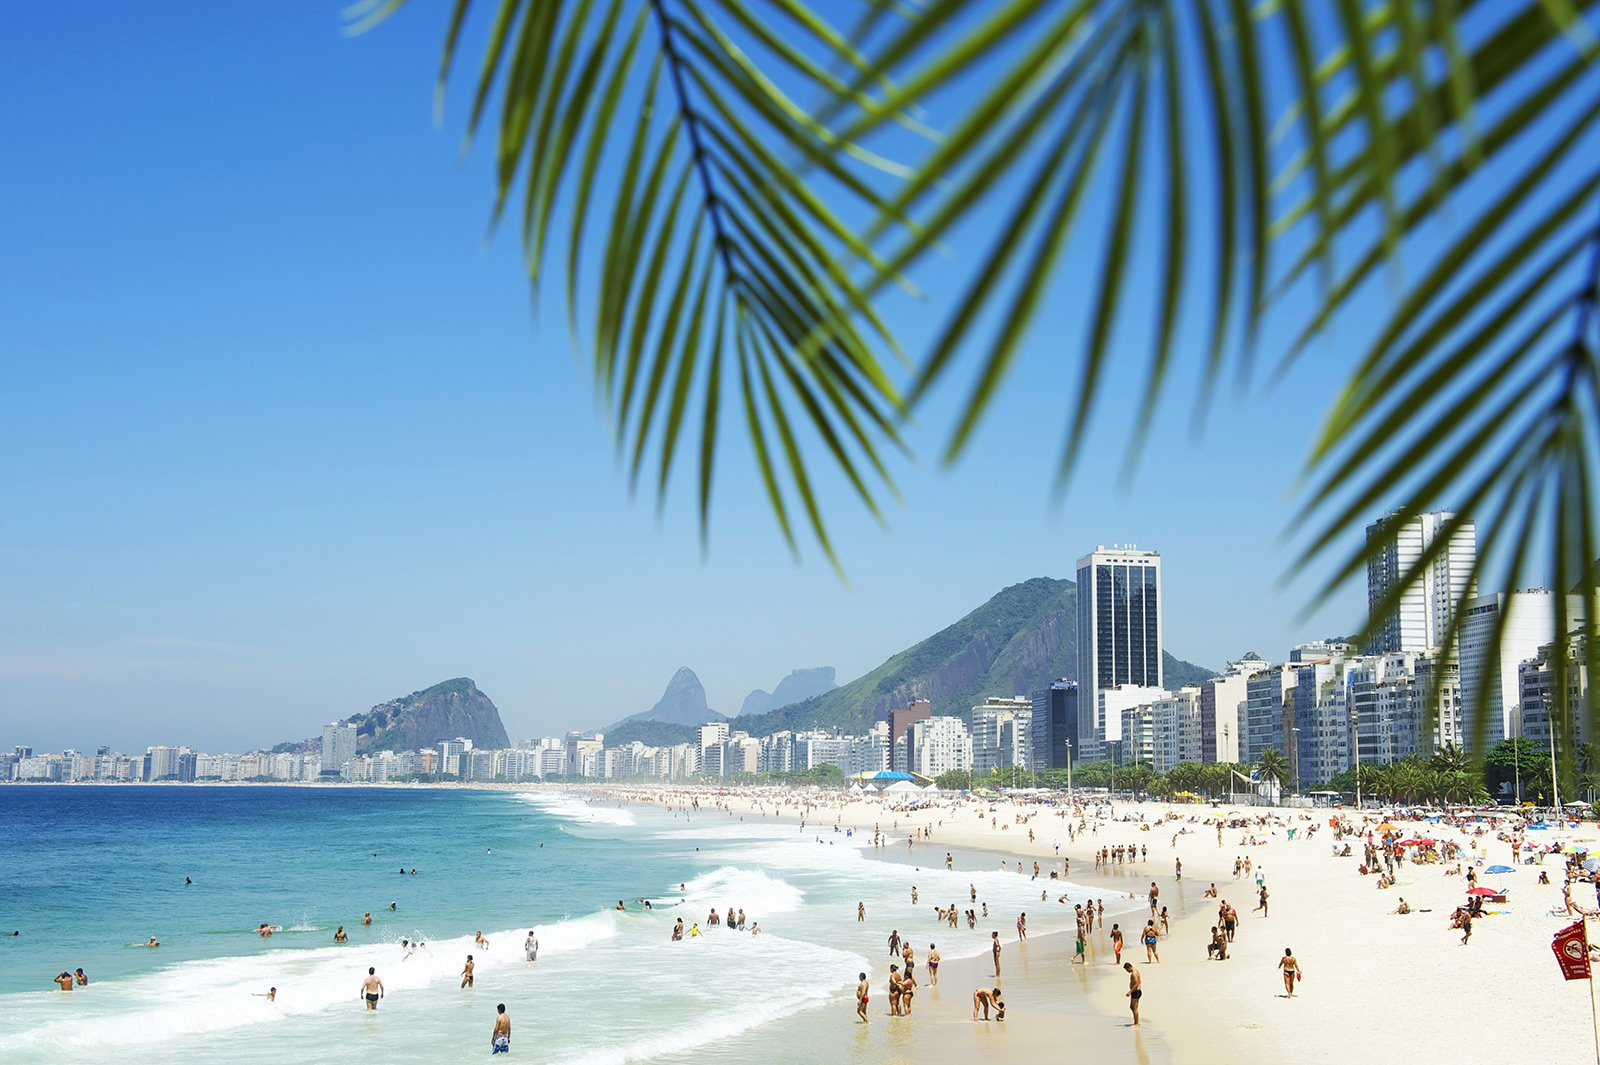 Copacabana Beach - This beach is one of the deadliest beaches in the worl because of the rate of petty crime in the area